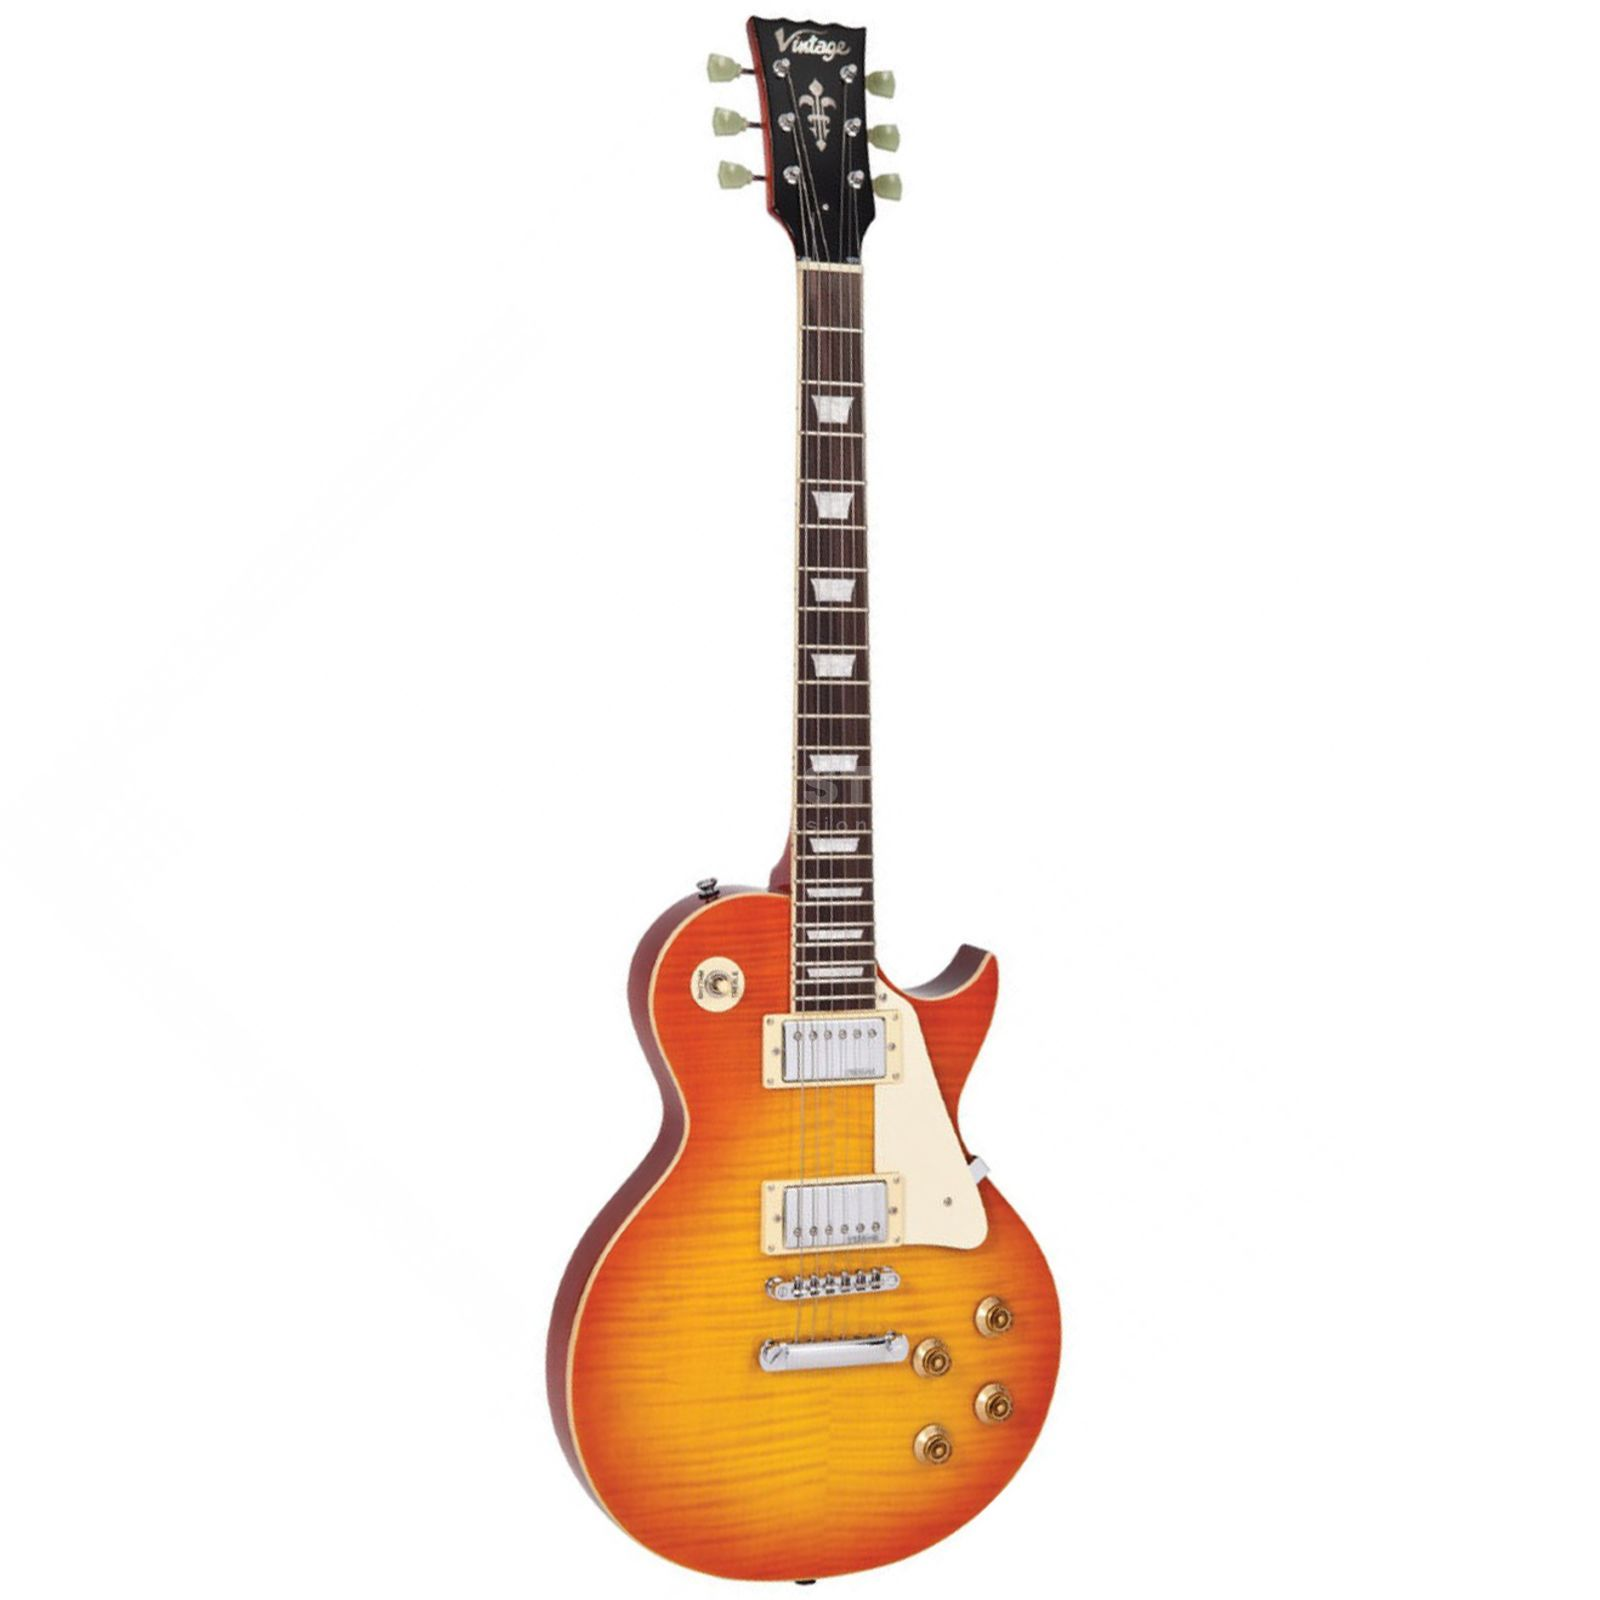 Vintage Reissued V100HB Flamed Honeyburst Produktbild